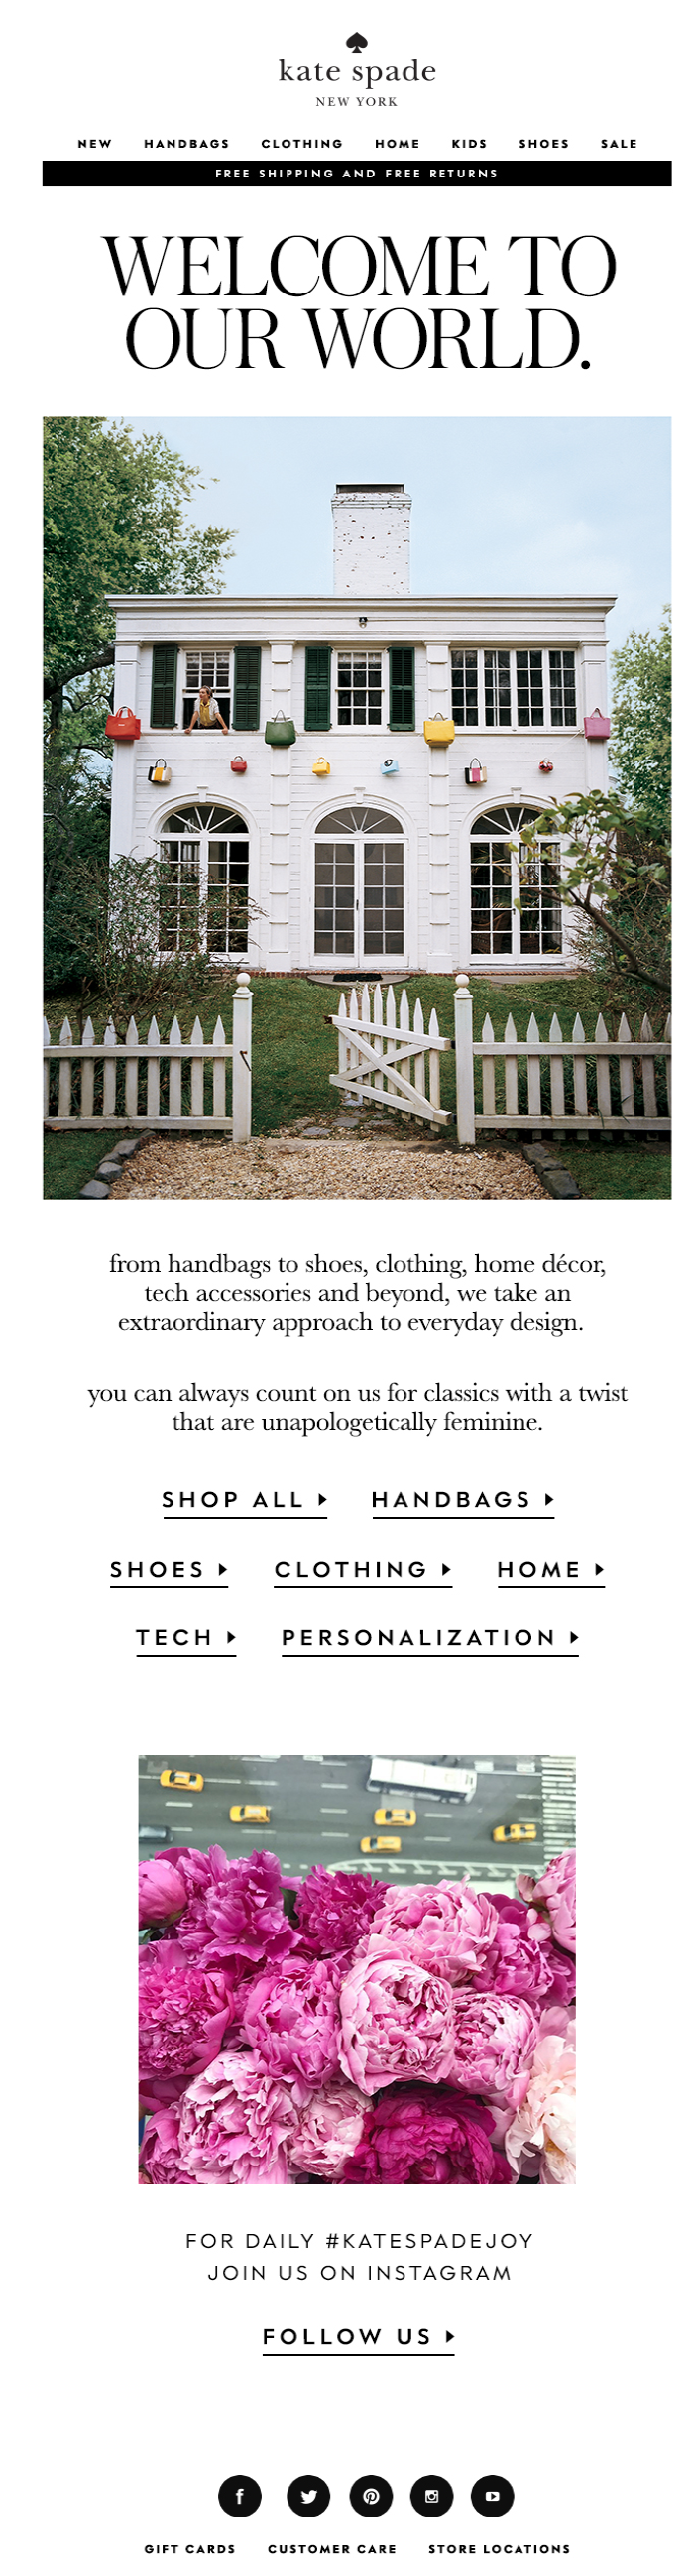 Welcome email by Kate Spade